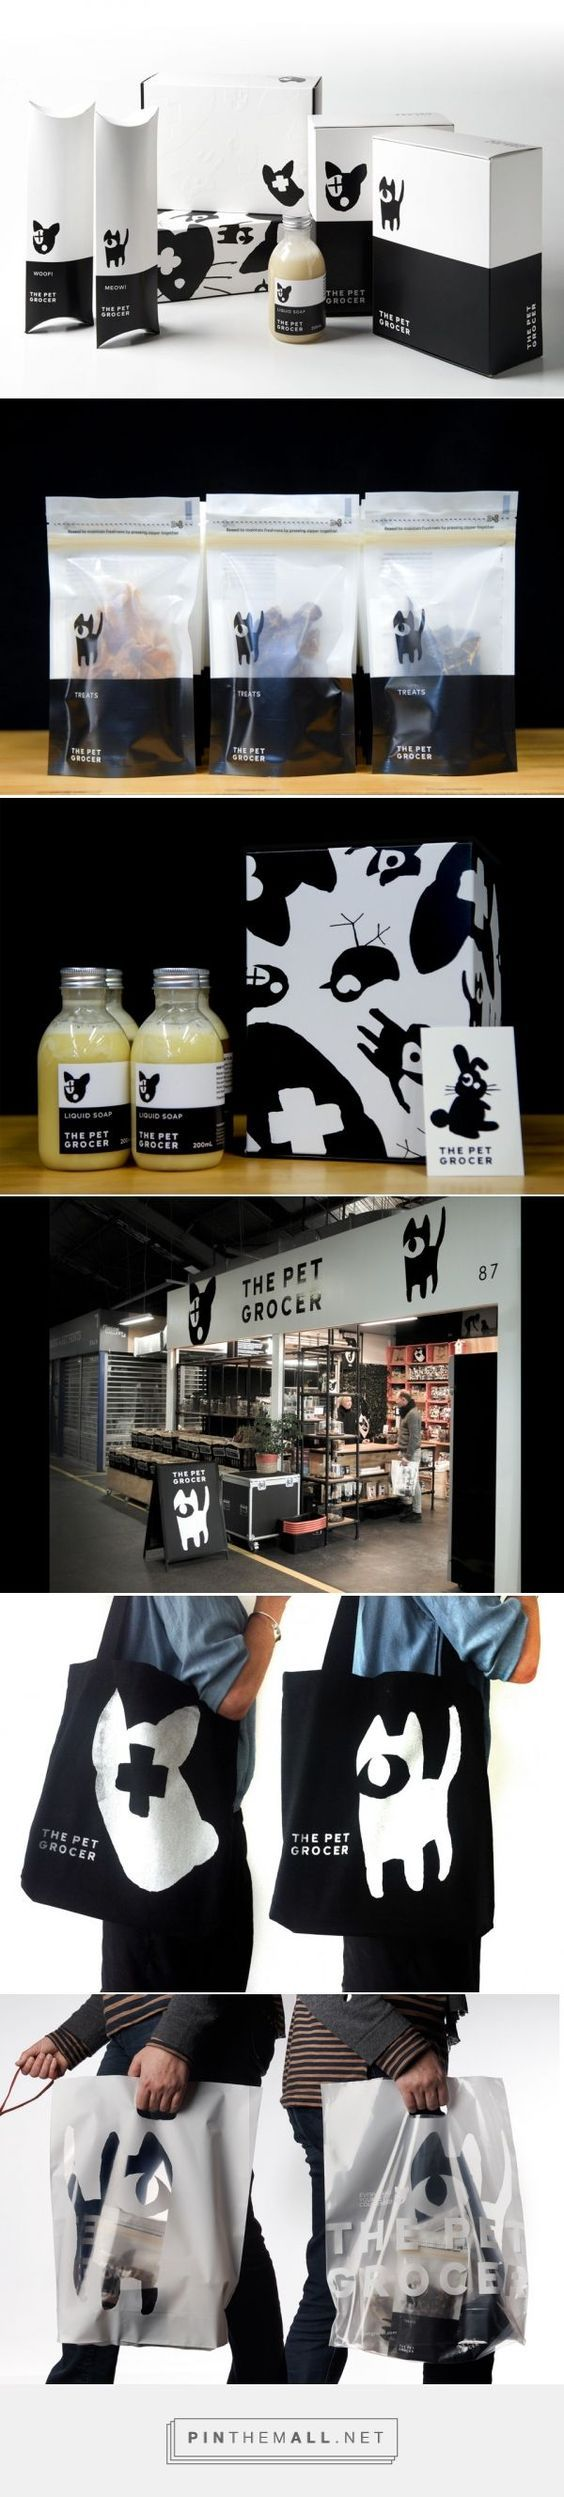 The Pet Grocer Packaging | Fivestar Branding – Design and Branding Agency & Inspiration Gallery